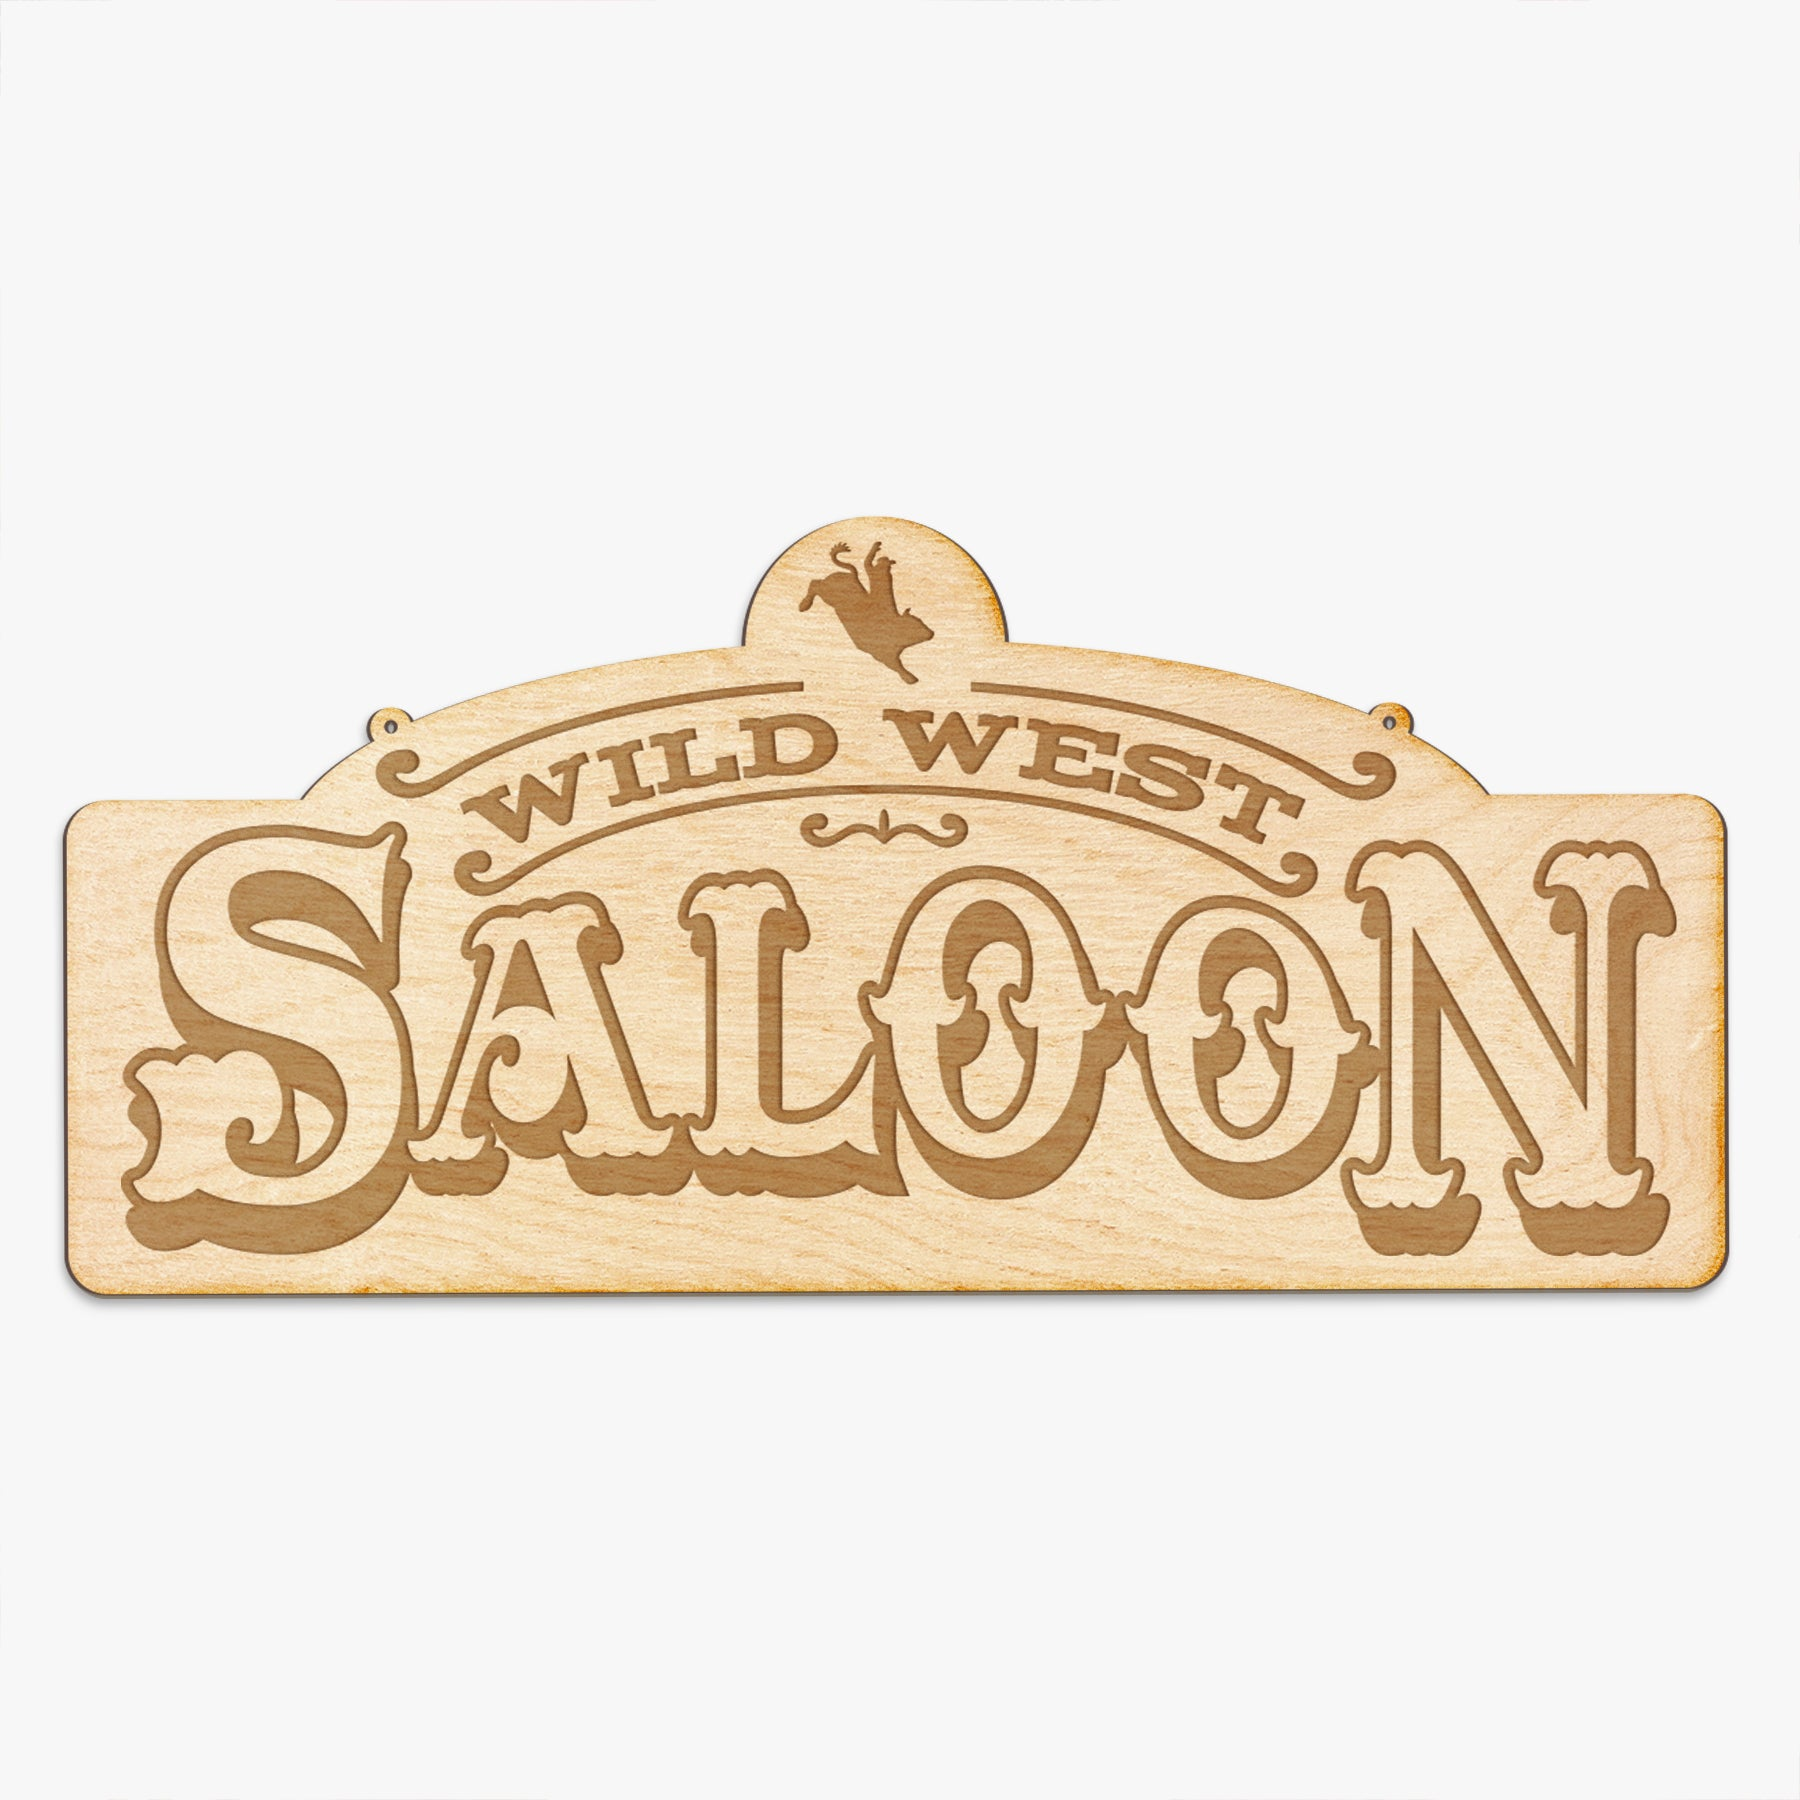 Wild West Saloon Engraved Sign